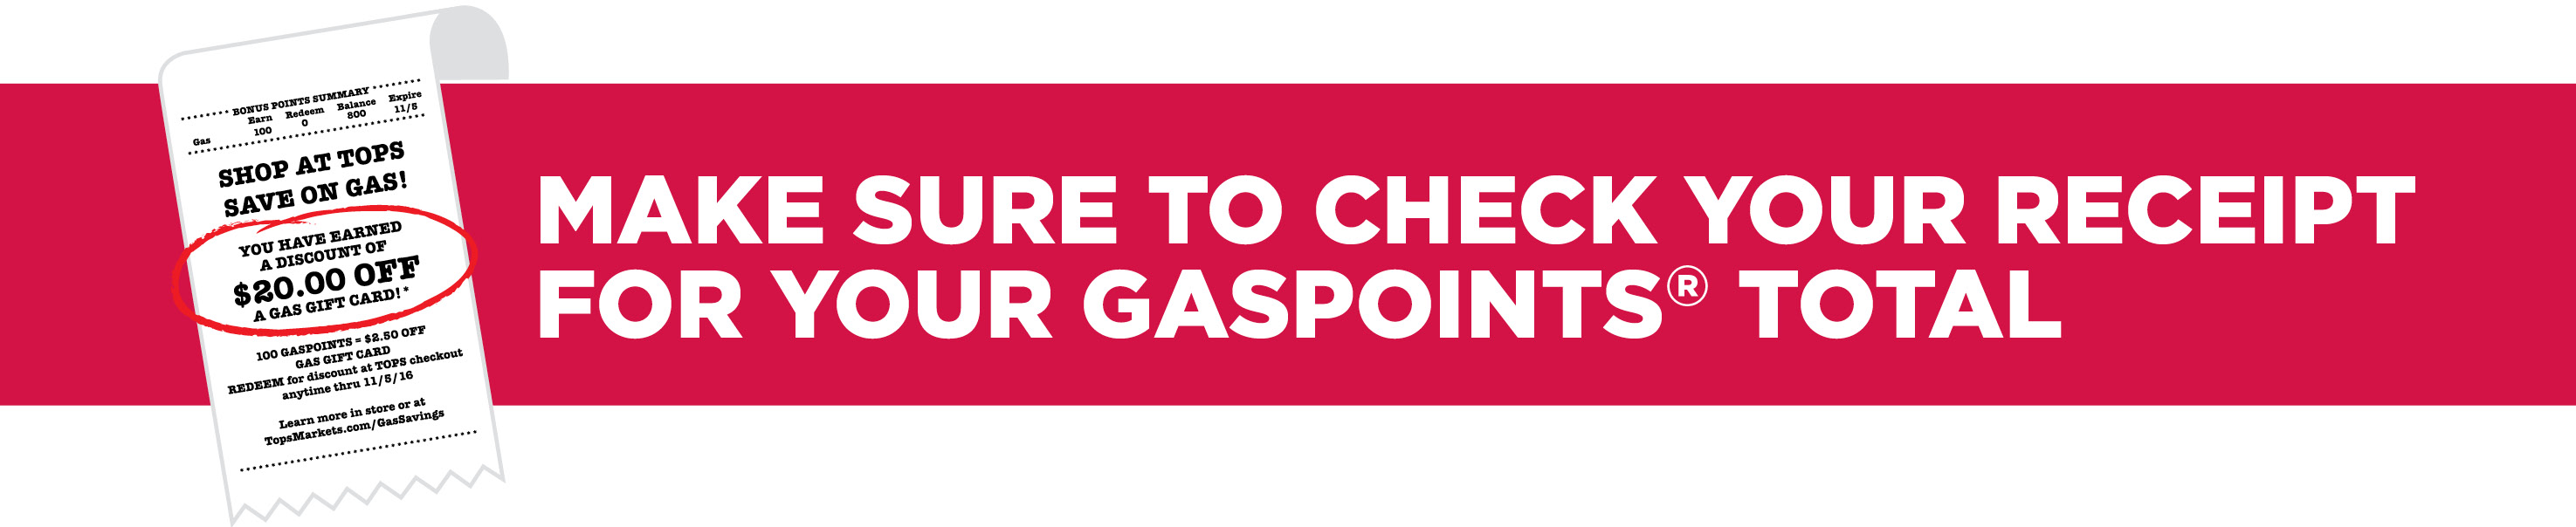 Make sure to check your receipt for your GasPoints Total